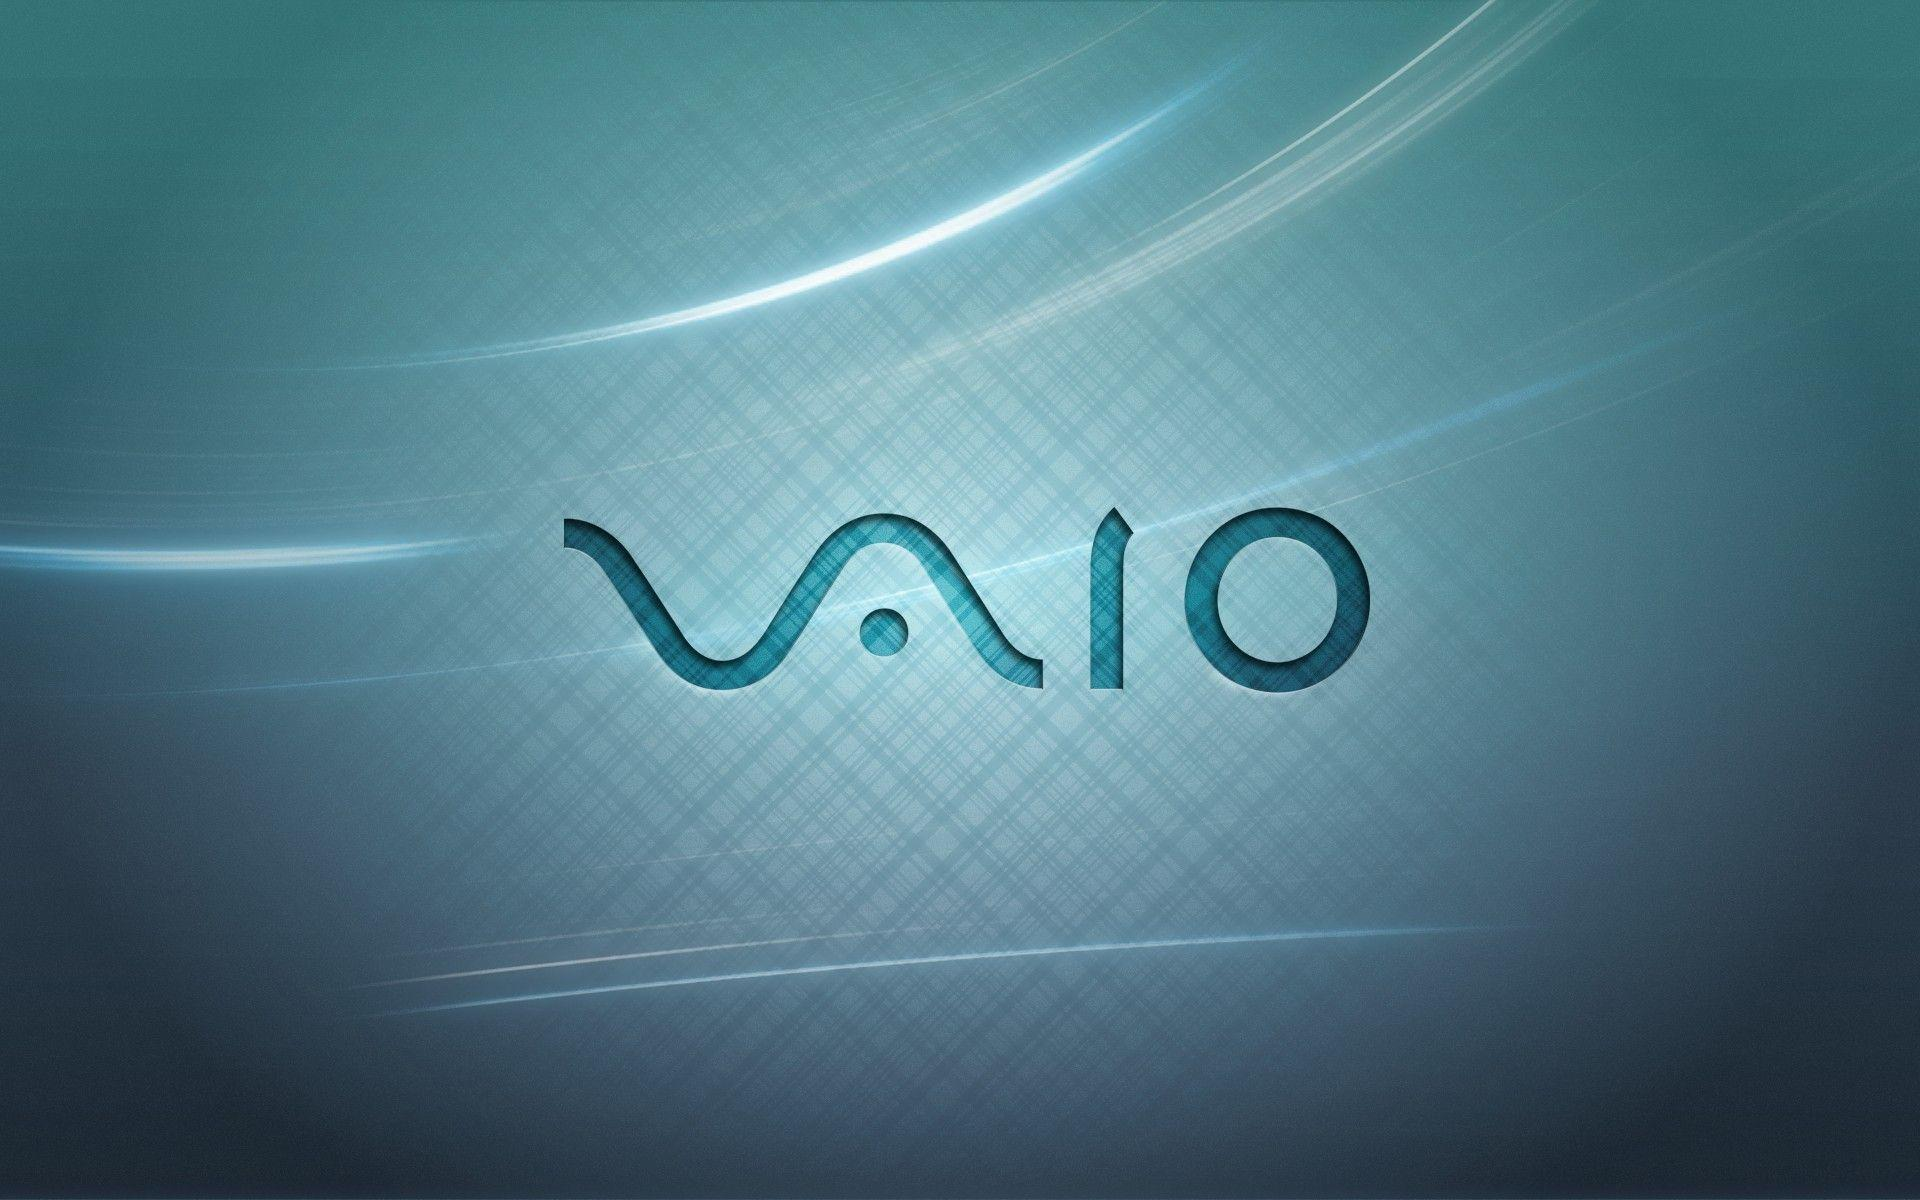 sony vaio wallpapers wallpaper cave